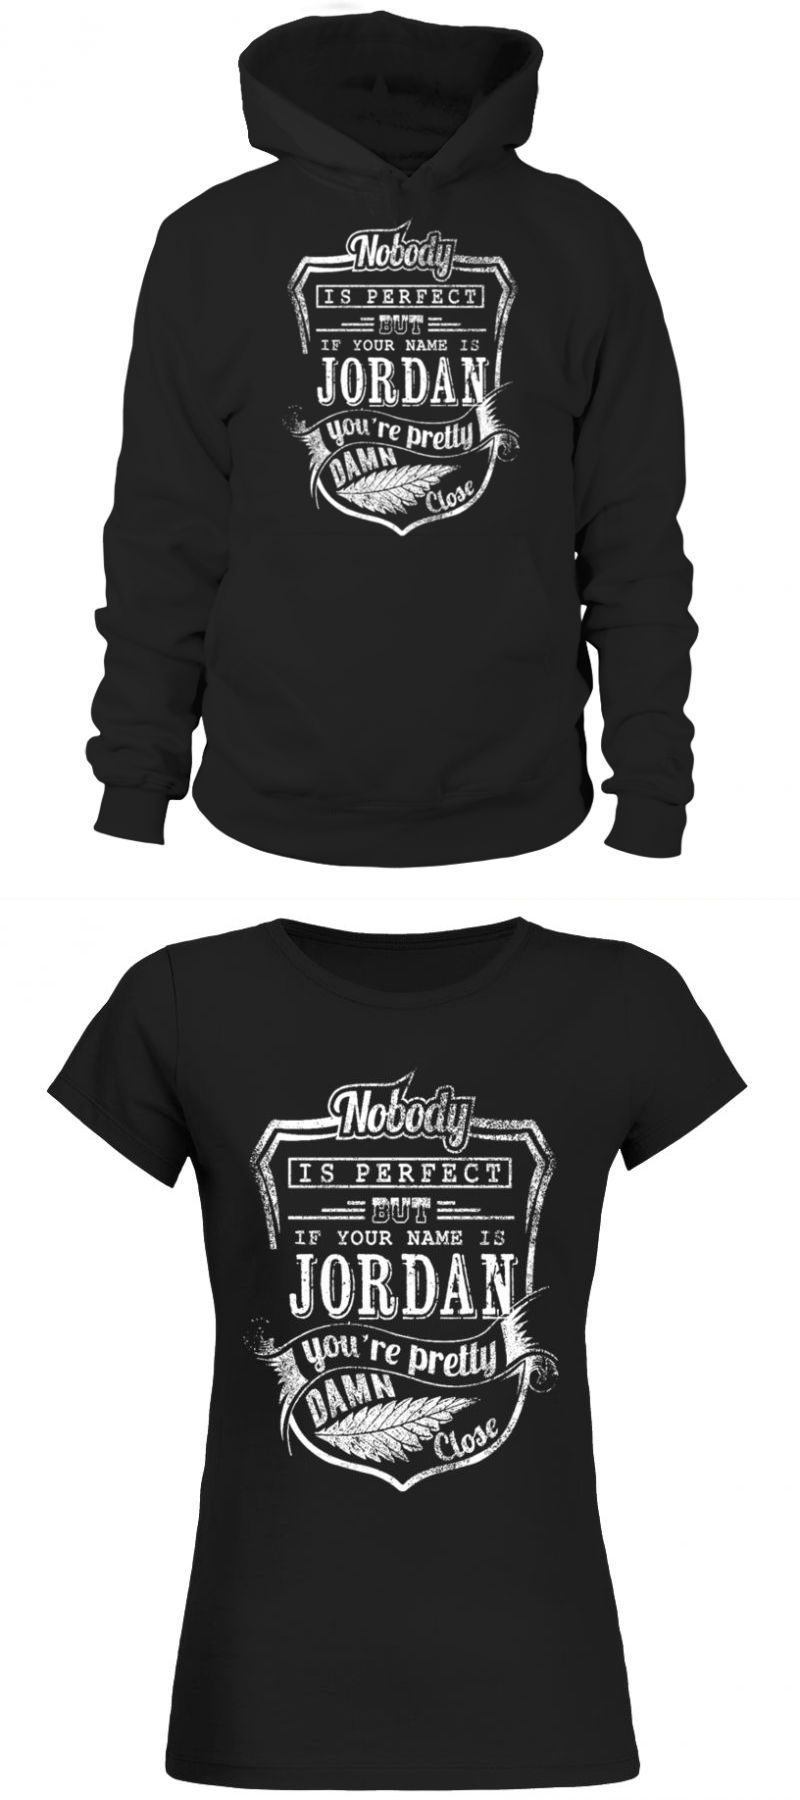 220a66ade170 ... t-shirt with jordan jordan cute t-shirts free size jordan  customised   woman s  t-shirt  with  jordan  cute  t-shirts  free  size  write  hoodie   unisex ...